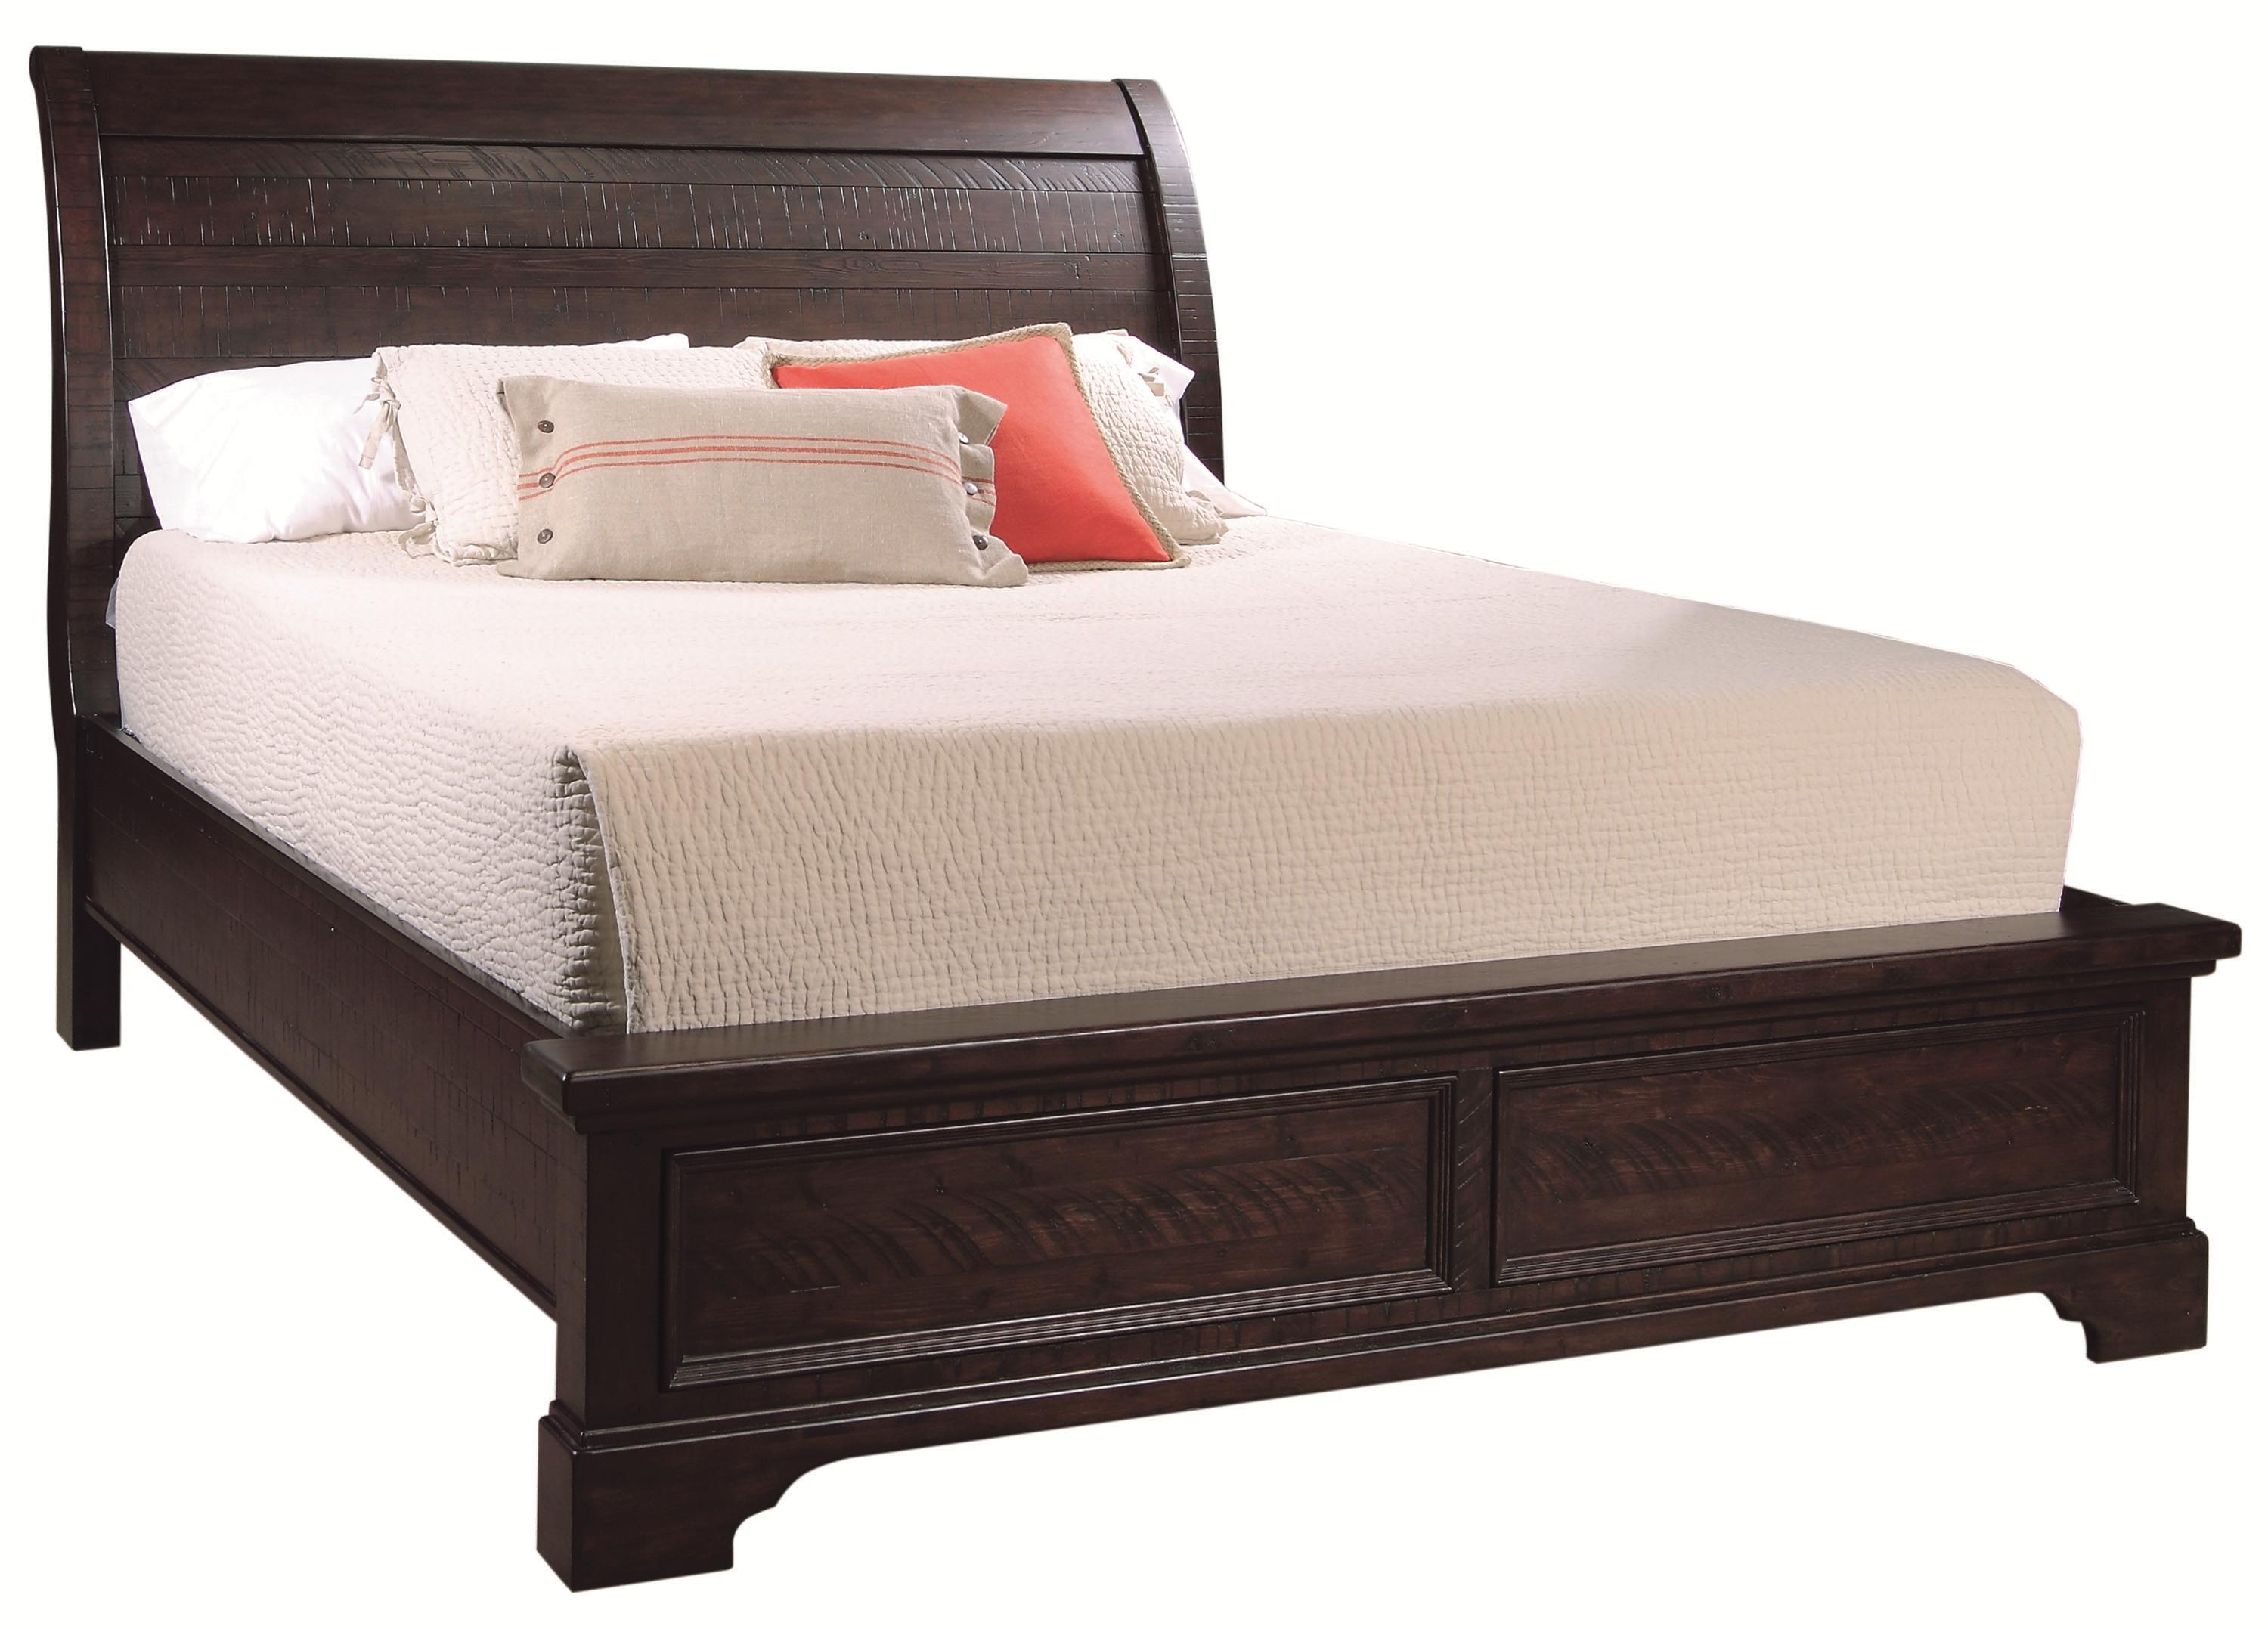 California king size sleigh bed with adjustable bed slats for Cal king bed size